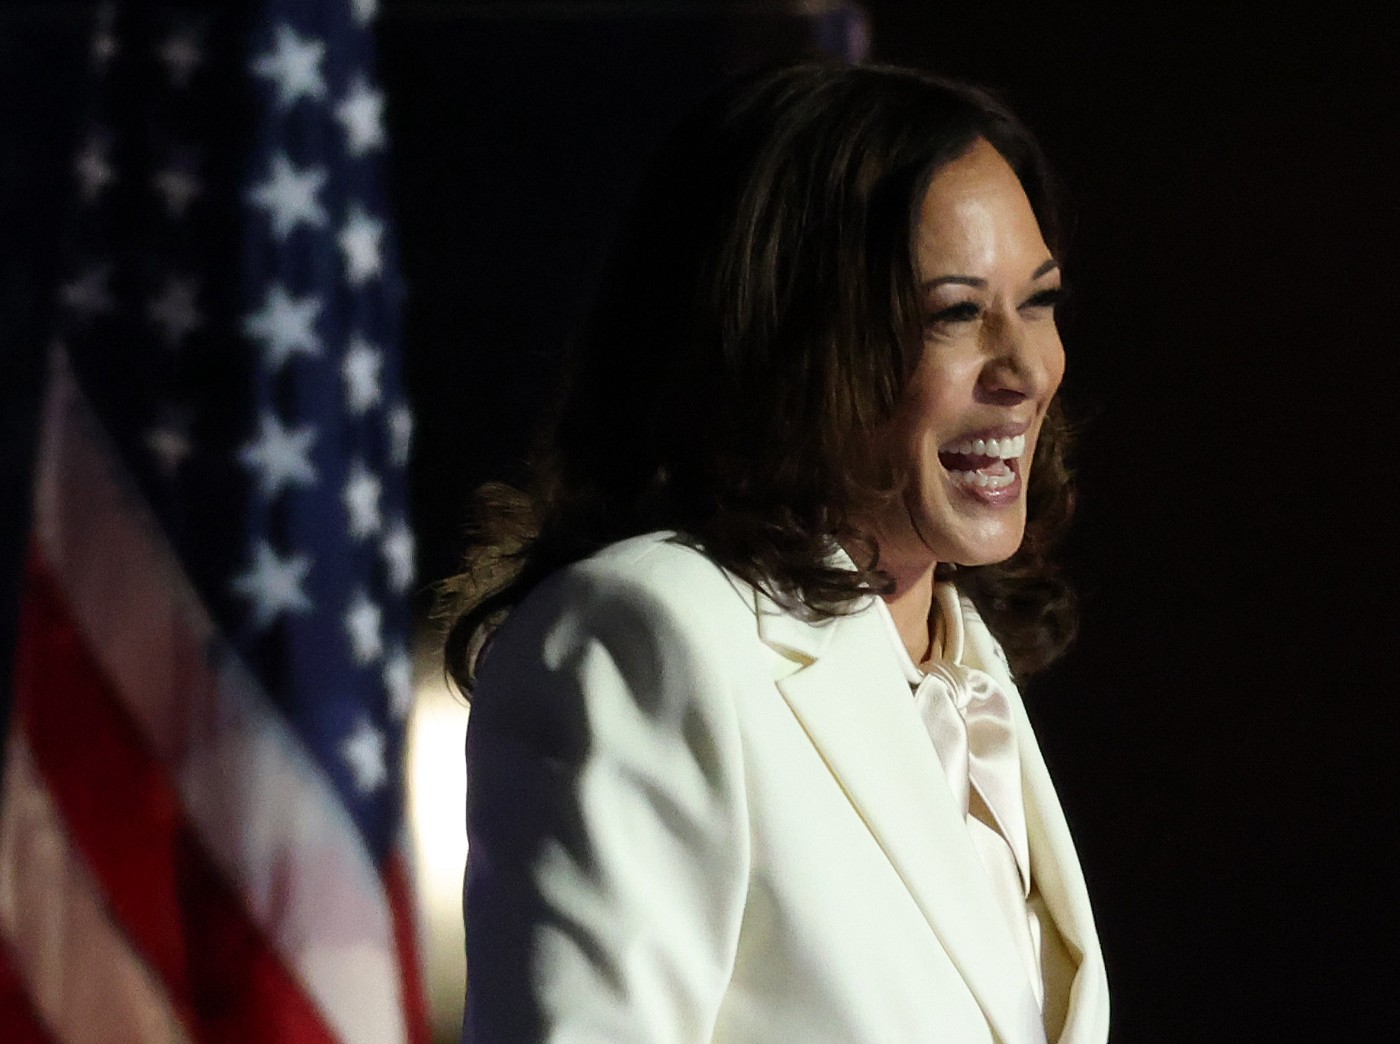 Vice President-elect Kamala Harris speaks on stage at the Chase Center.